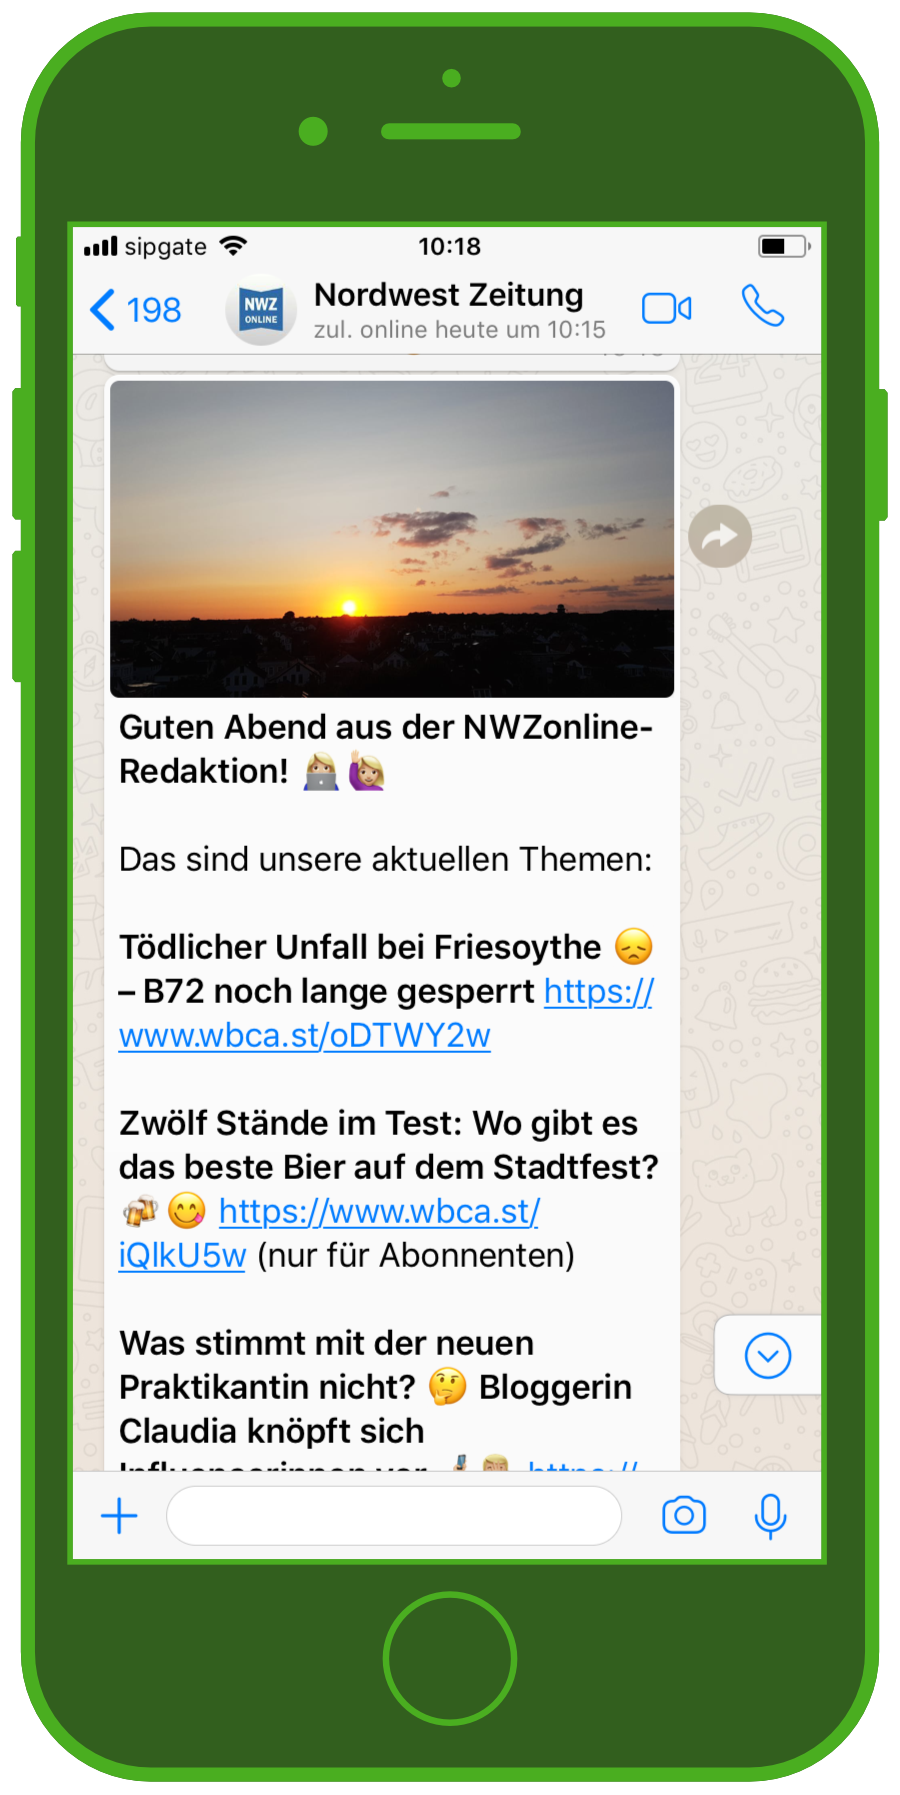 device-nordwest-zeitung-1